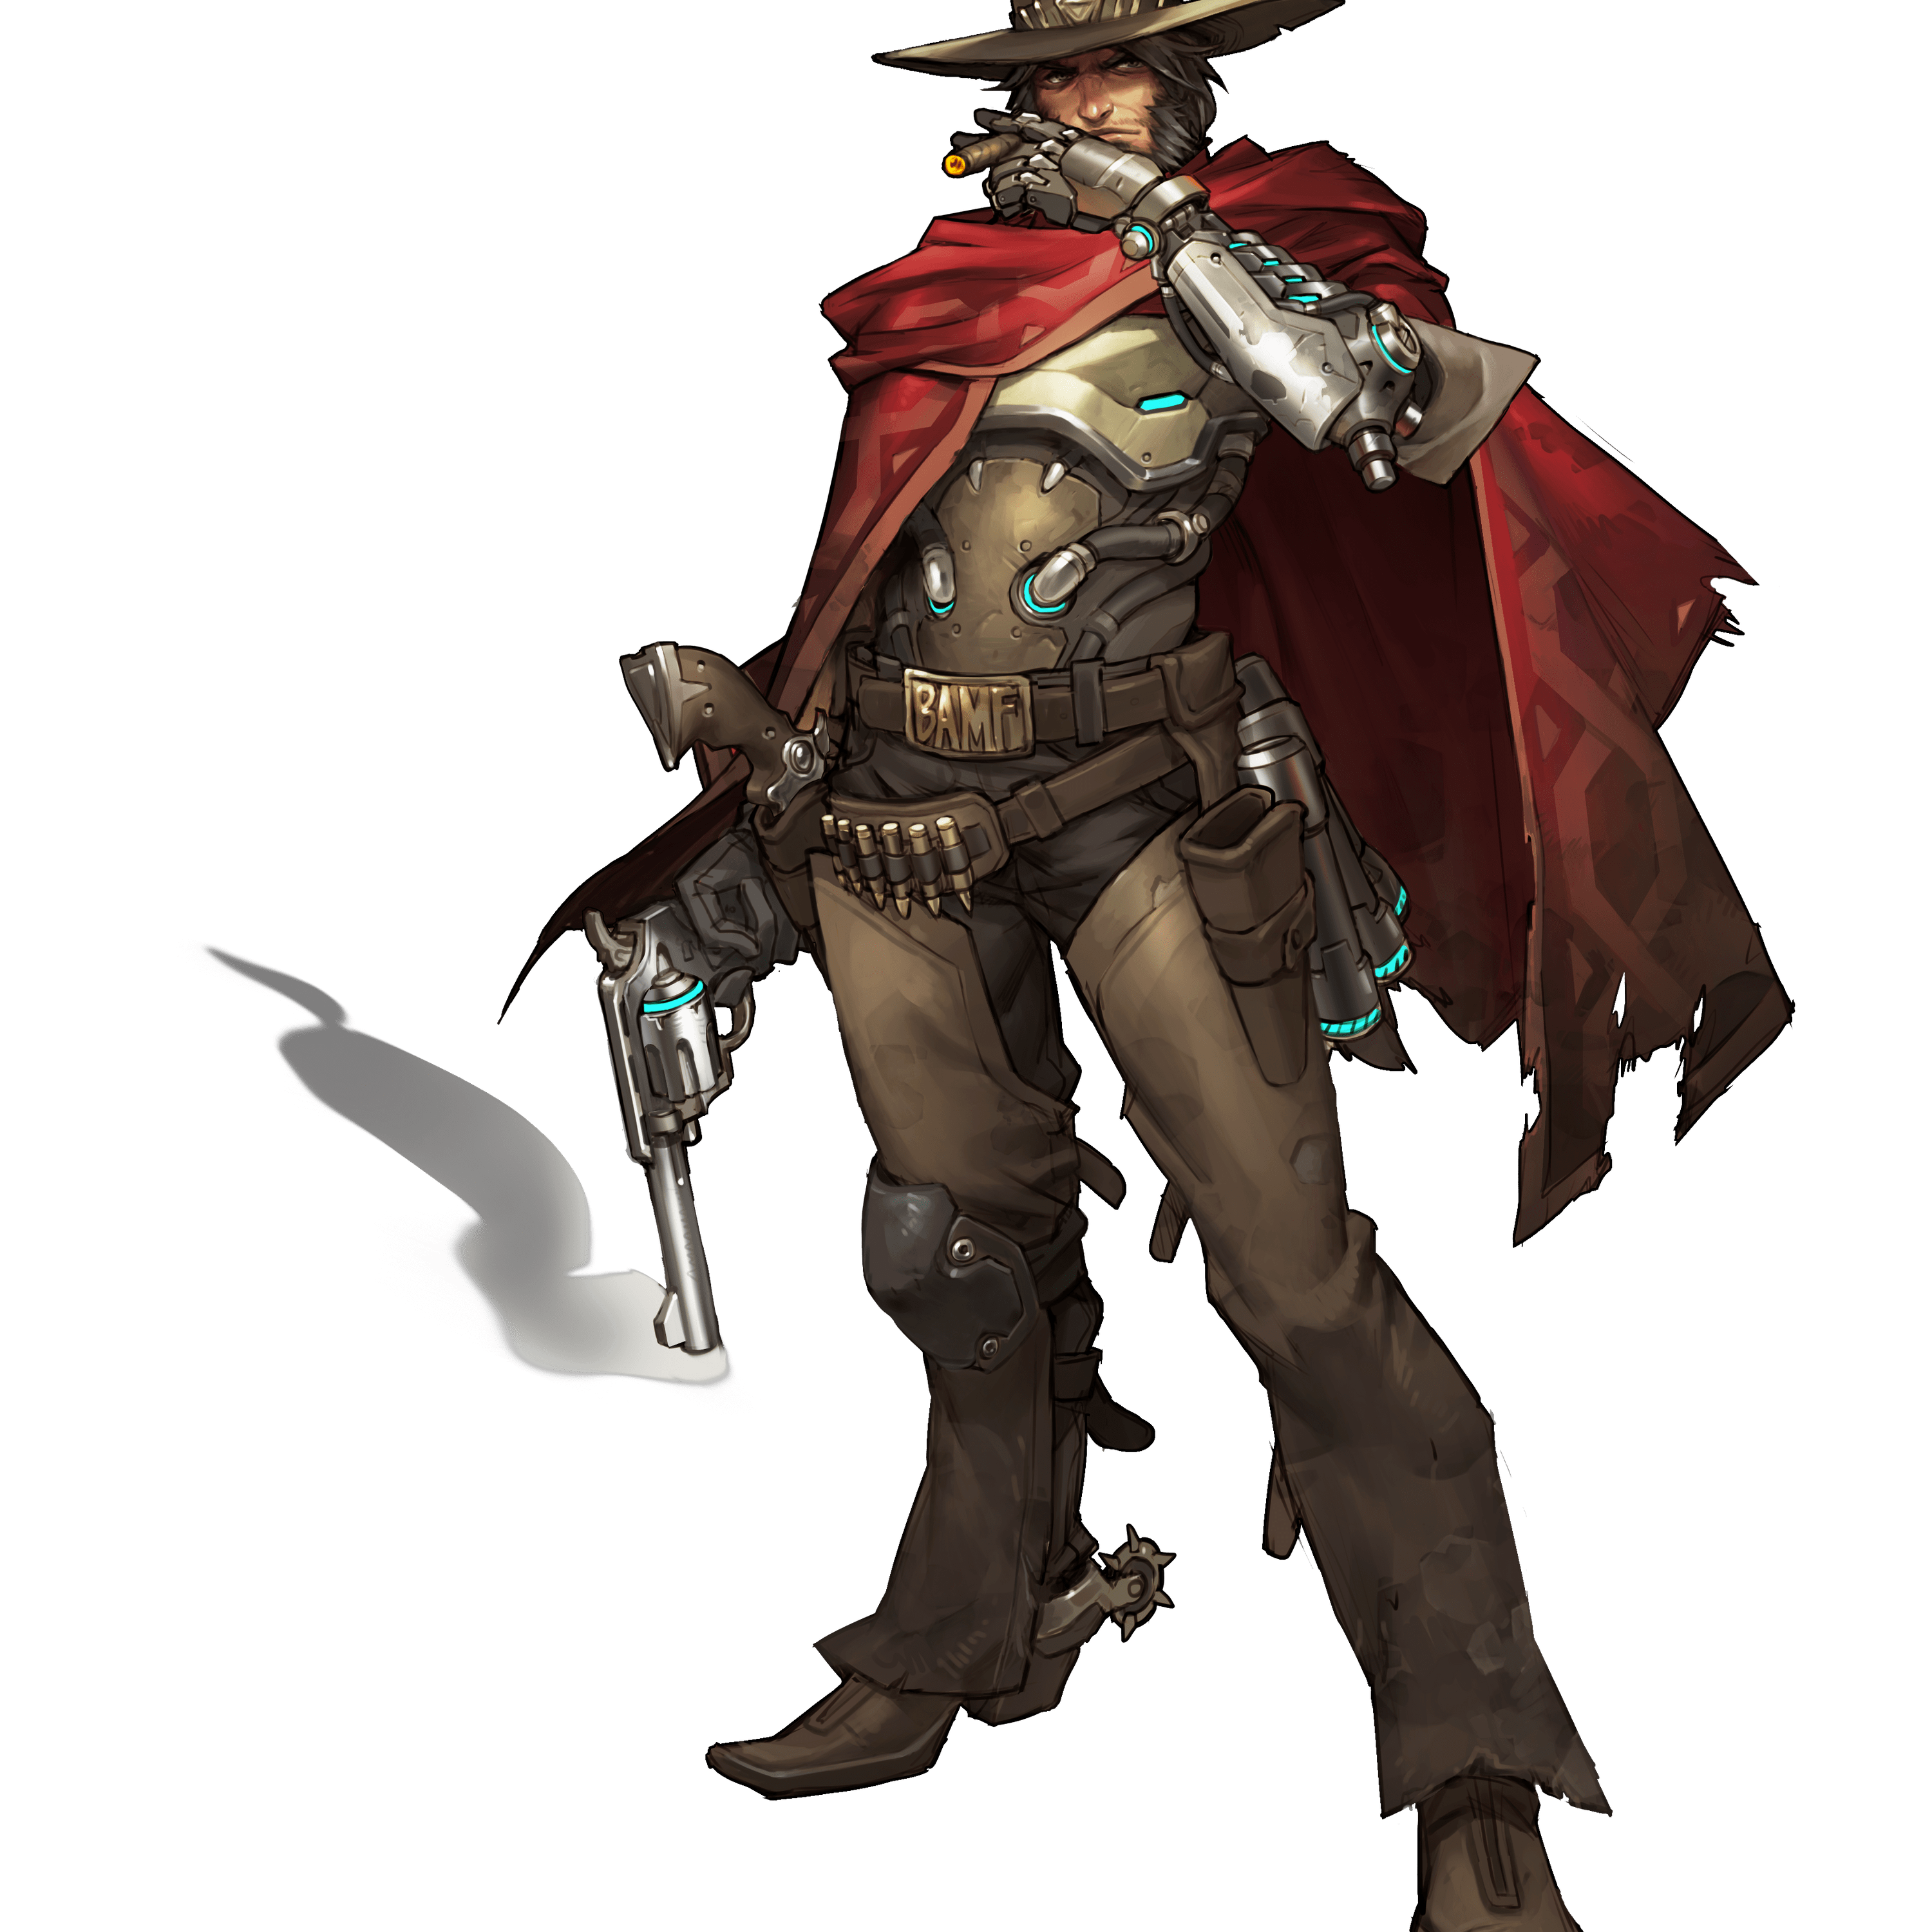 Transparent reaper overwatch. Mccree png stickpng download